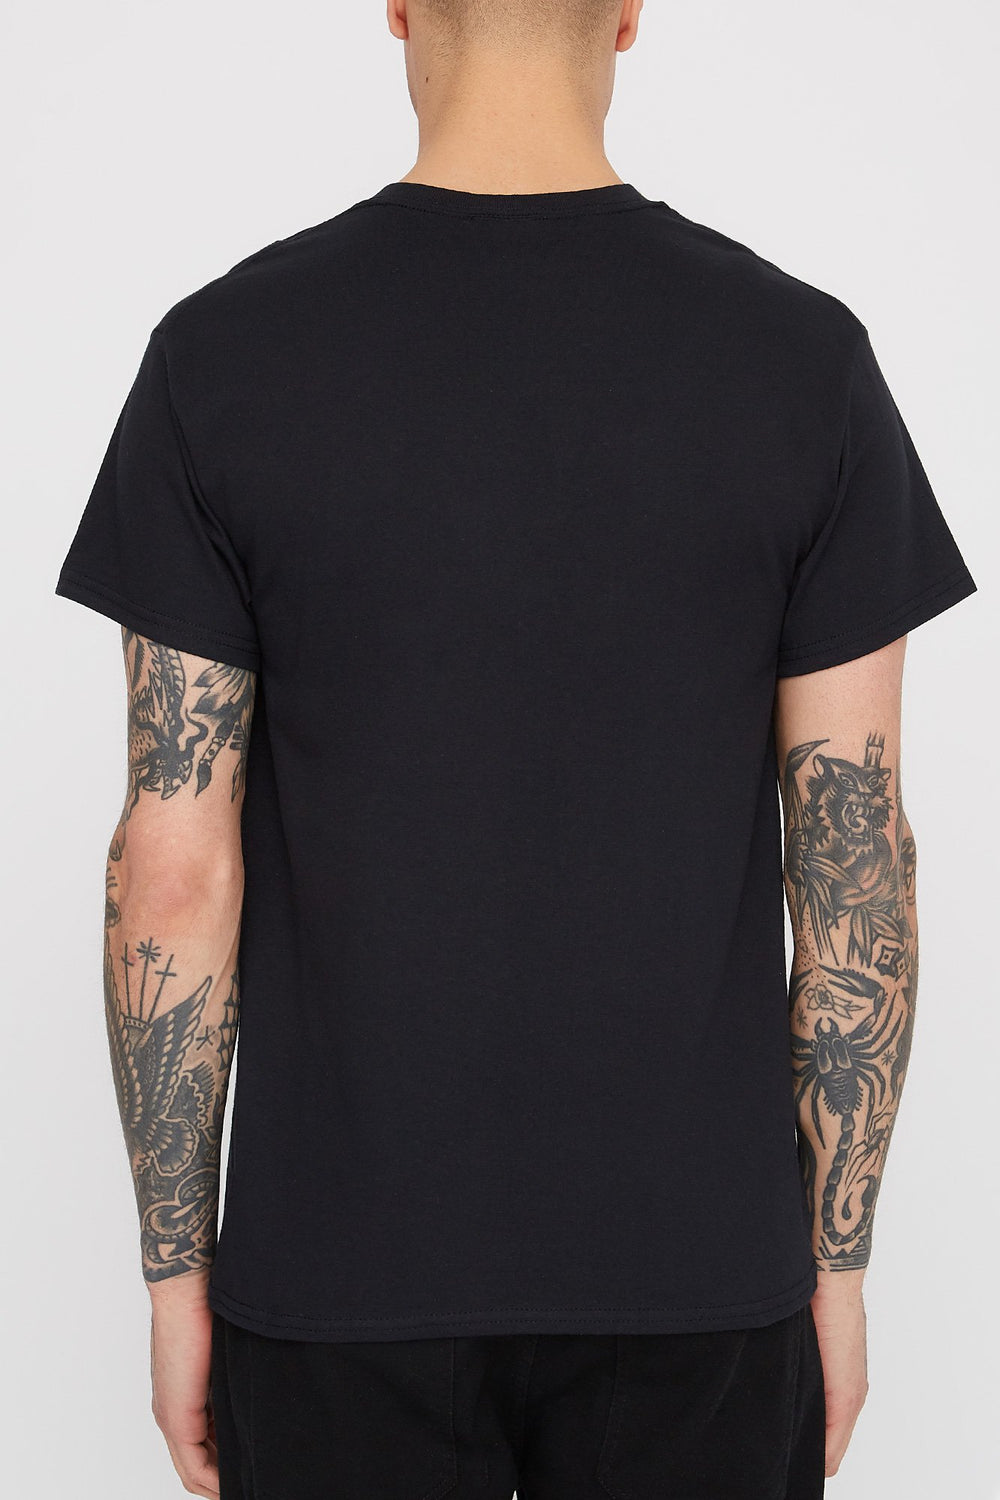 T-Shirt Thrasher Intro Burner Homme Noir